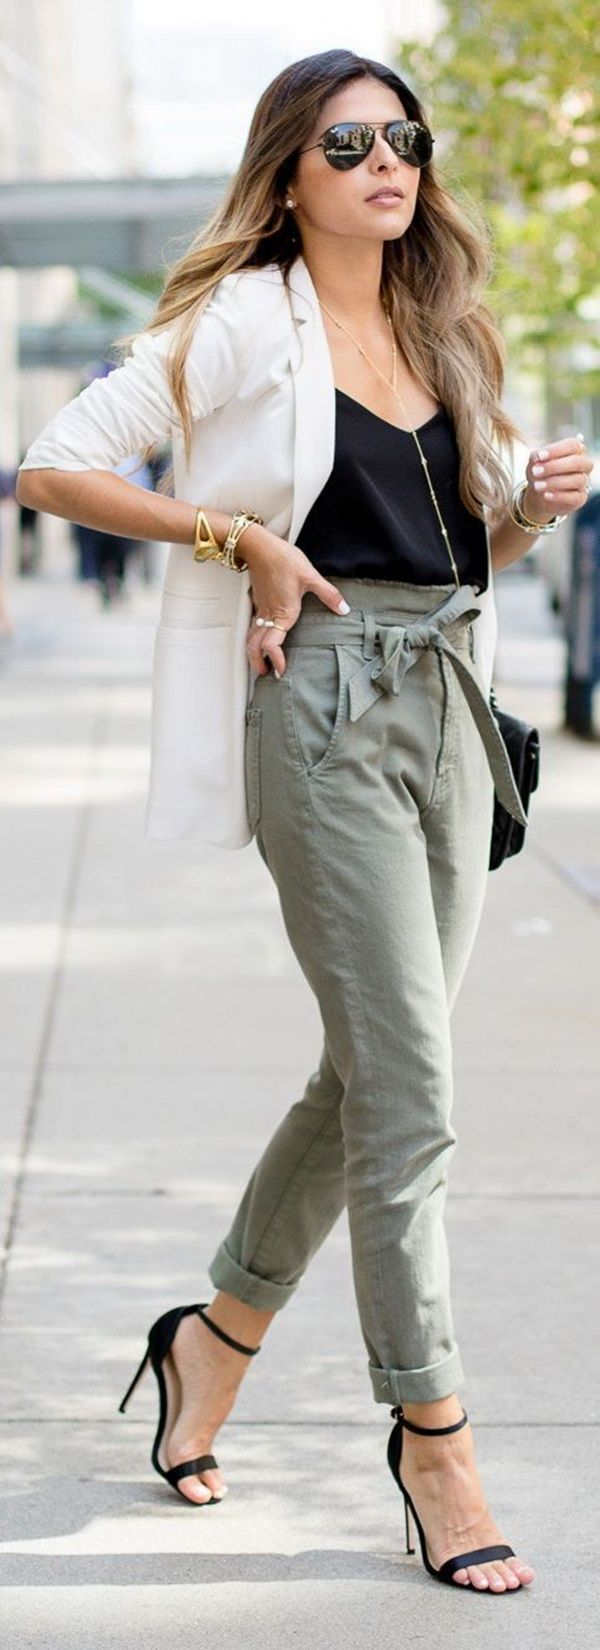 green-olive-joggers-pants-black-cami-white-jacket-blazer-black-shoe-sandalh-sun-black-bag-howtowear-fashion-style-outfit-spring-summer-hairr-work.jpg